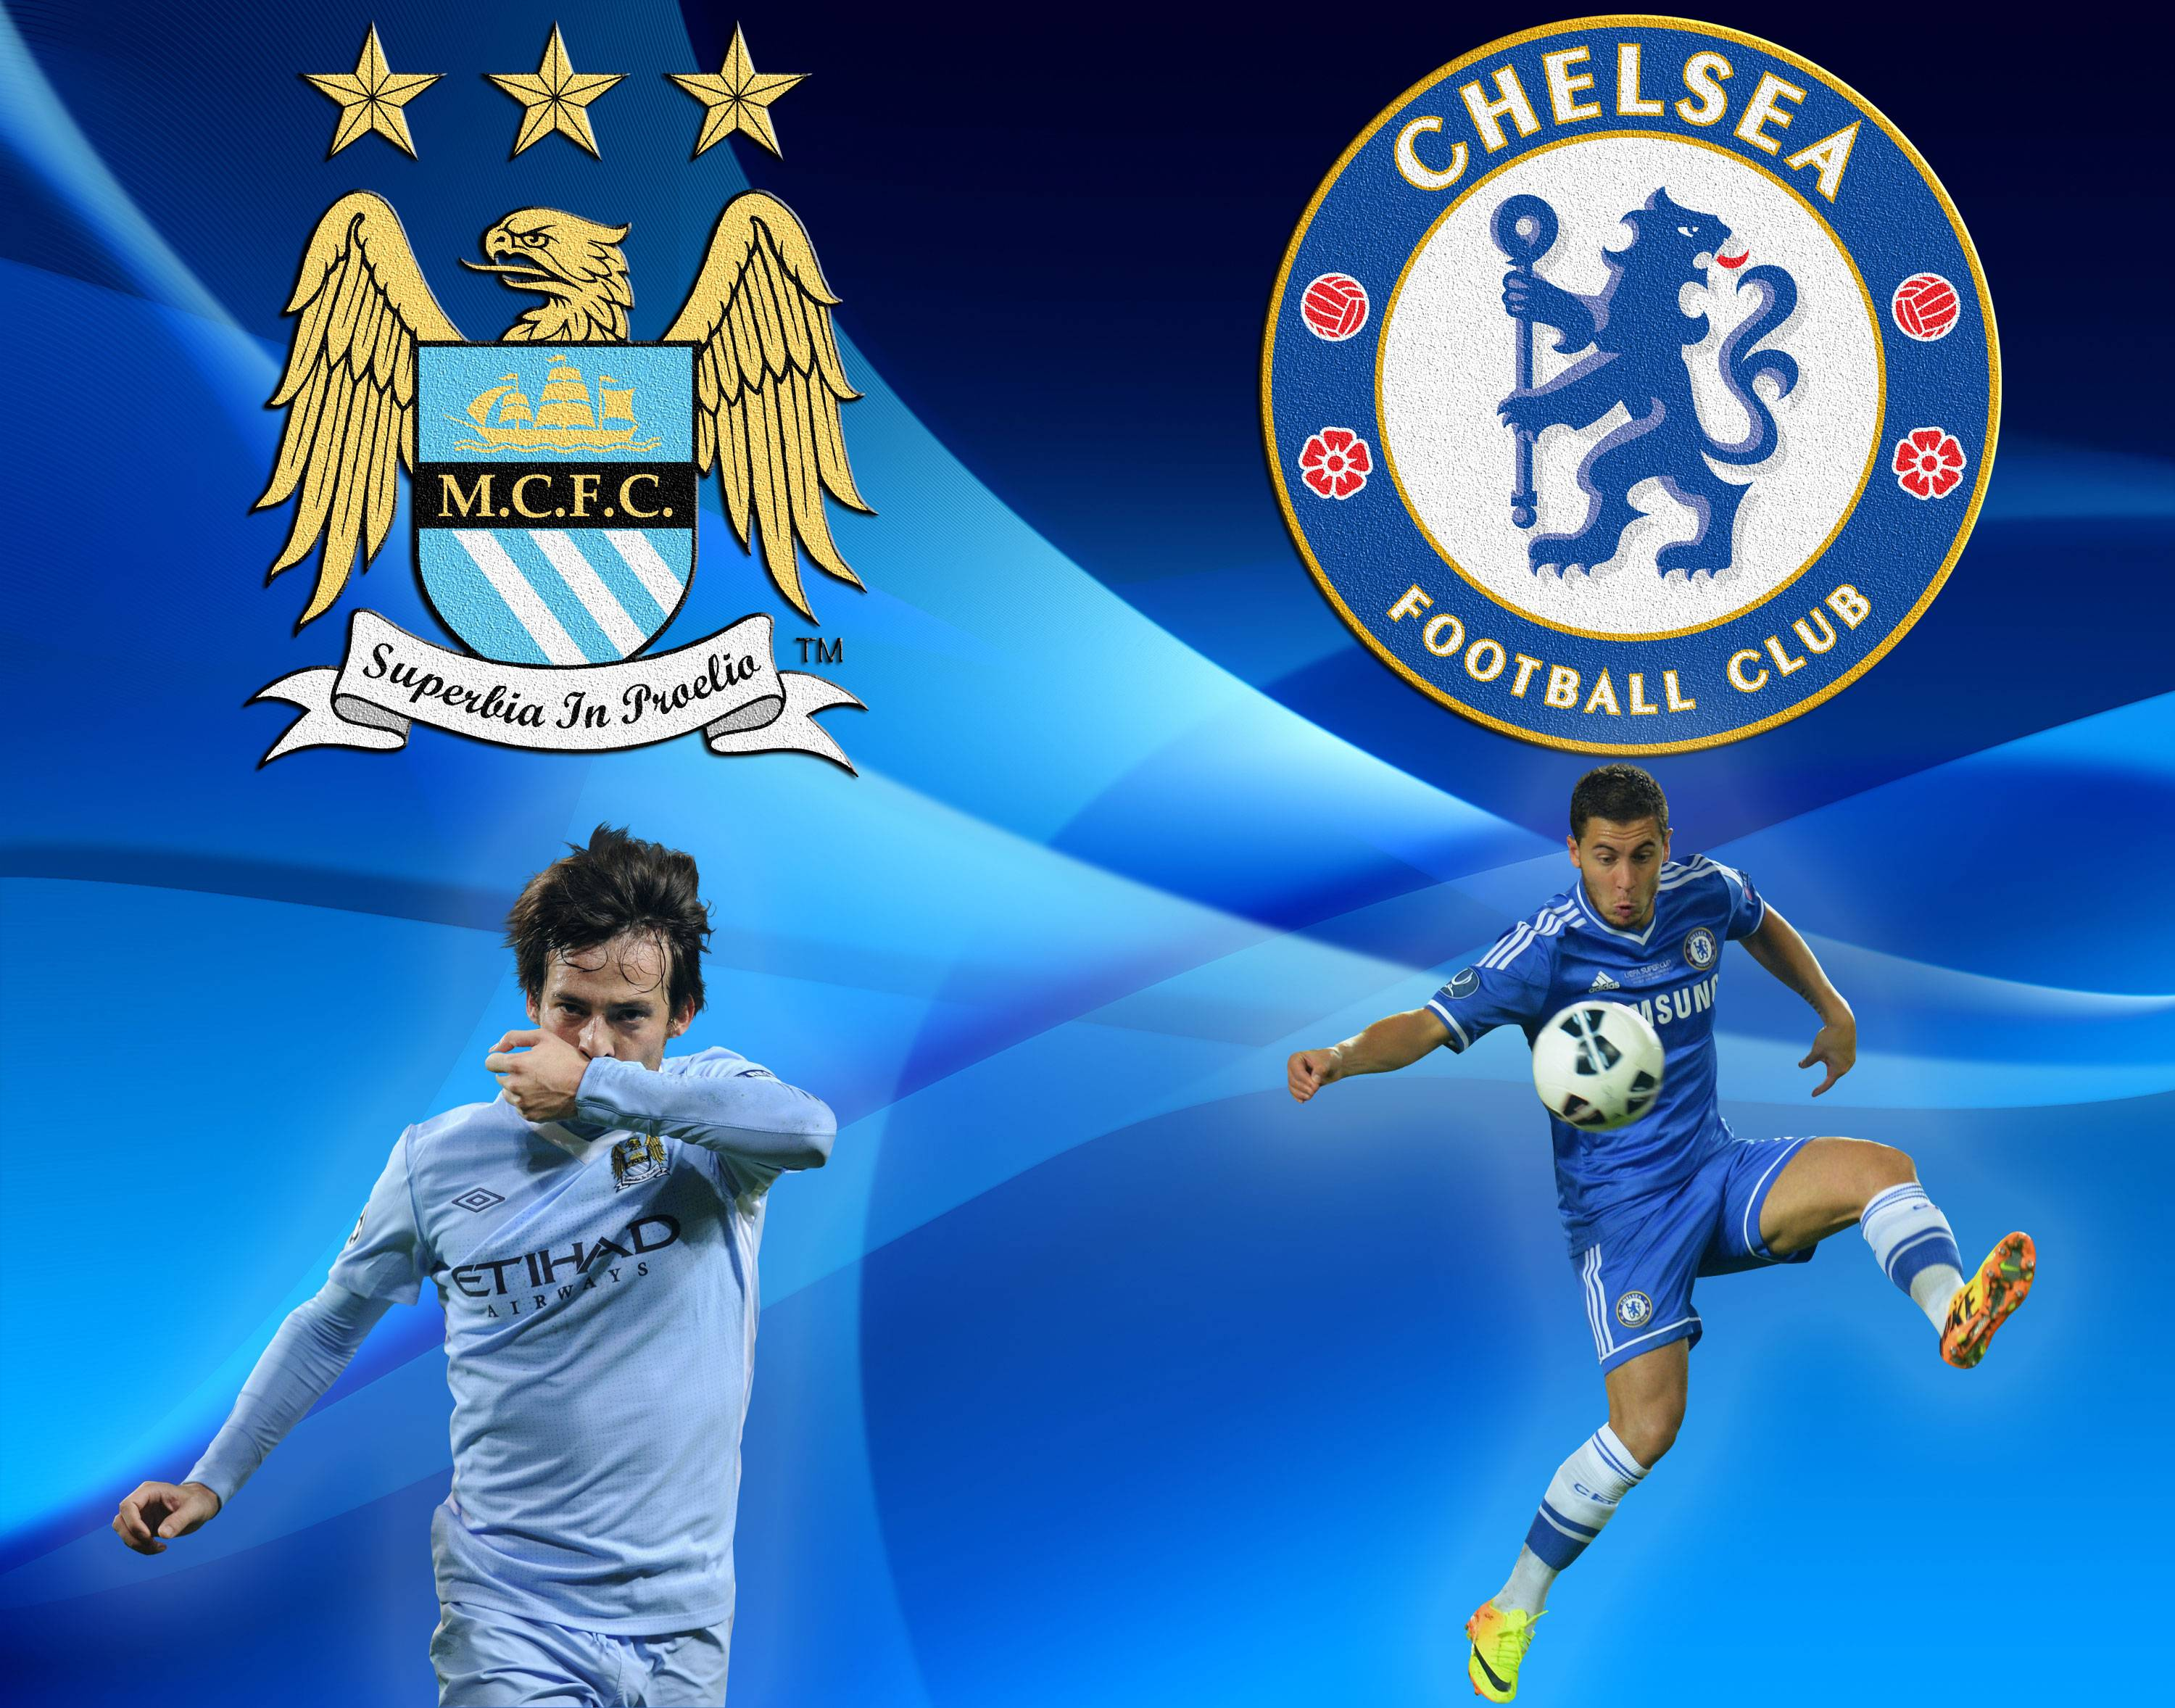 Images From Manchester City Vs Chelsea: Man City Wallpapers 2015